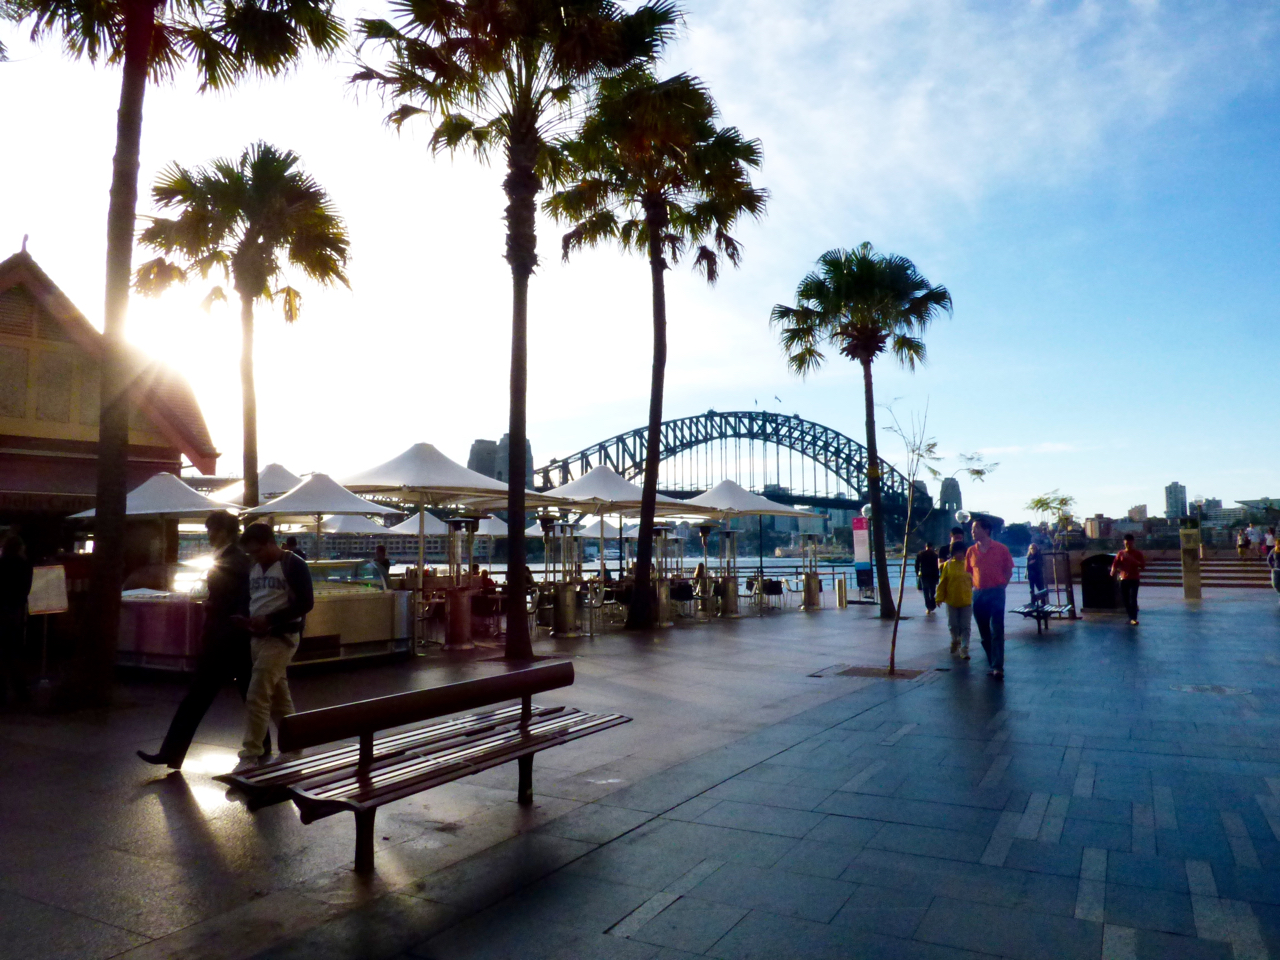 Sydney Harbour Bridge and walkway